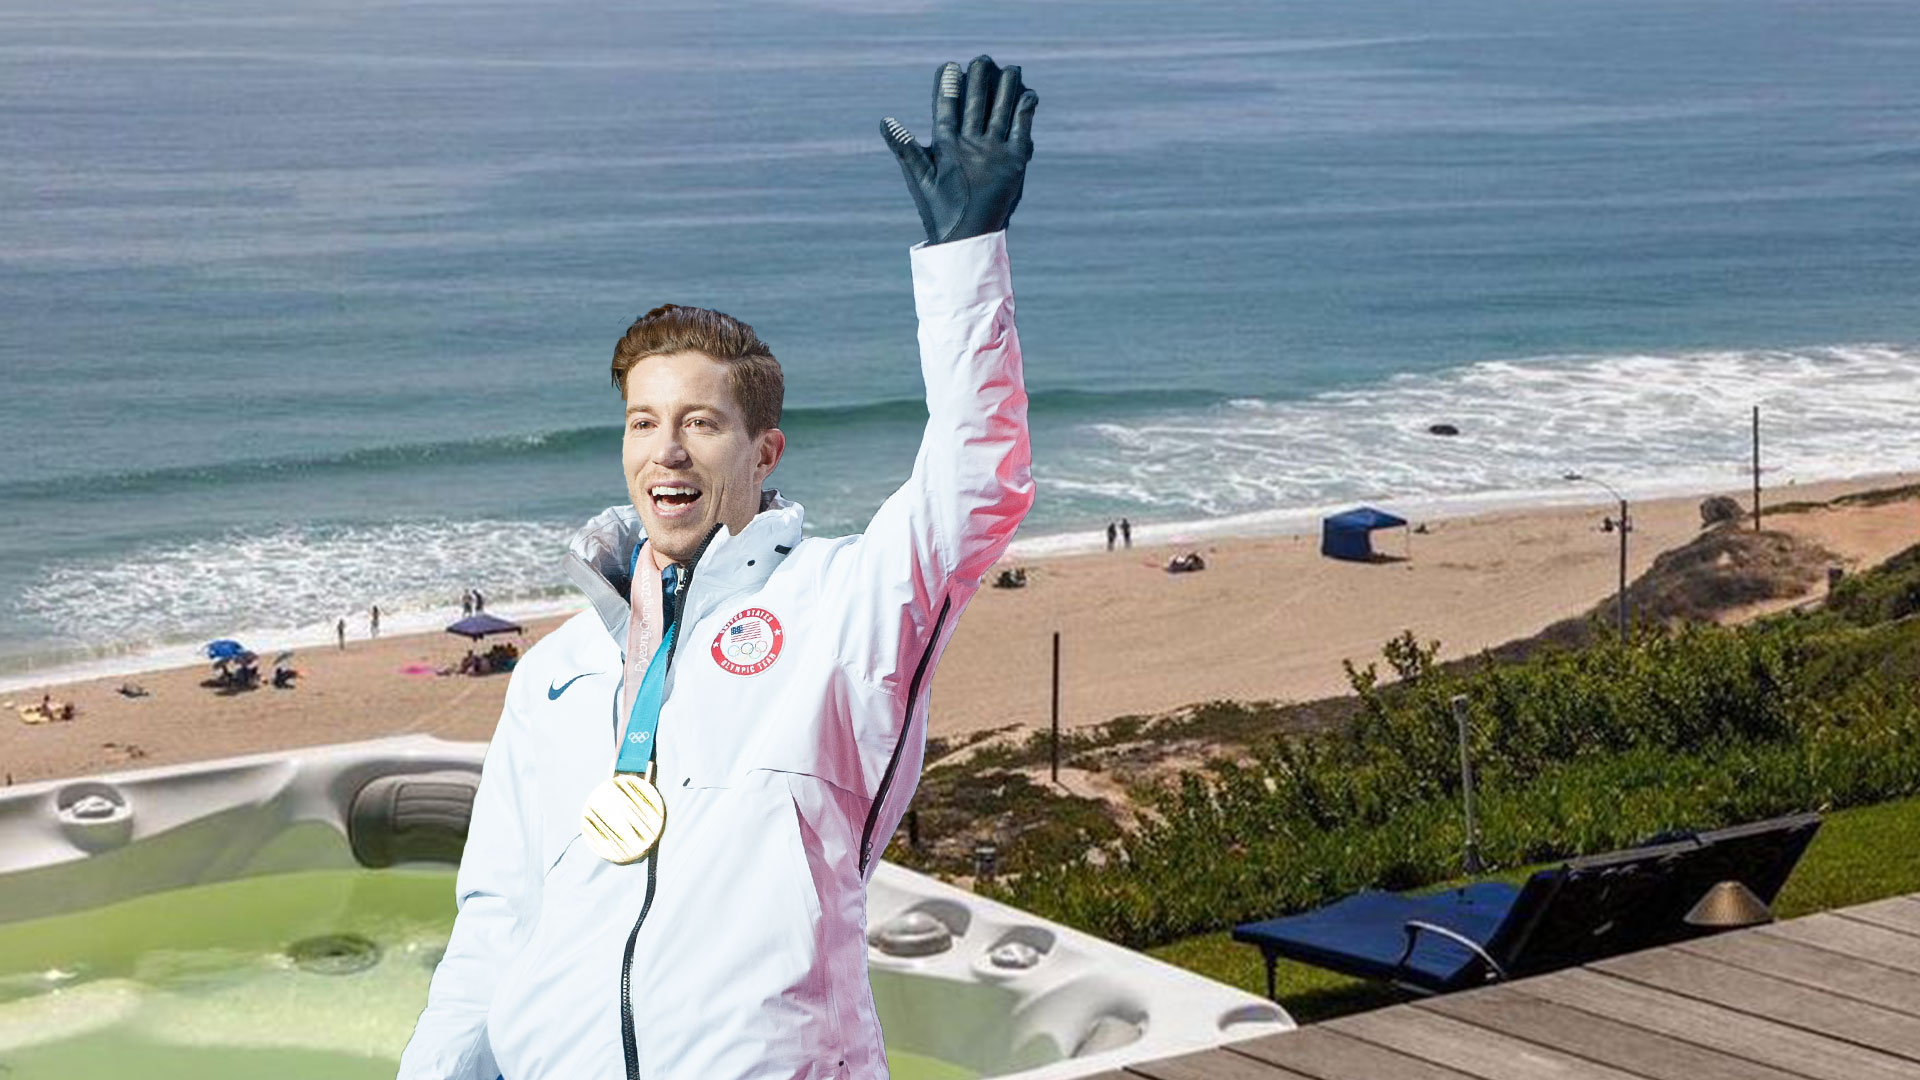 Hanging Out At Shaun White's House Would Be The Shit